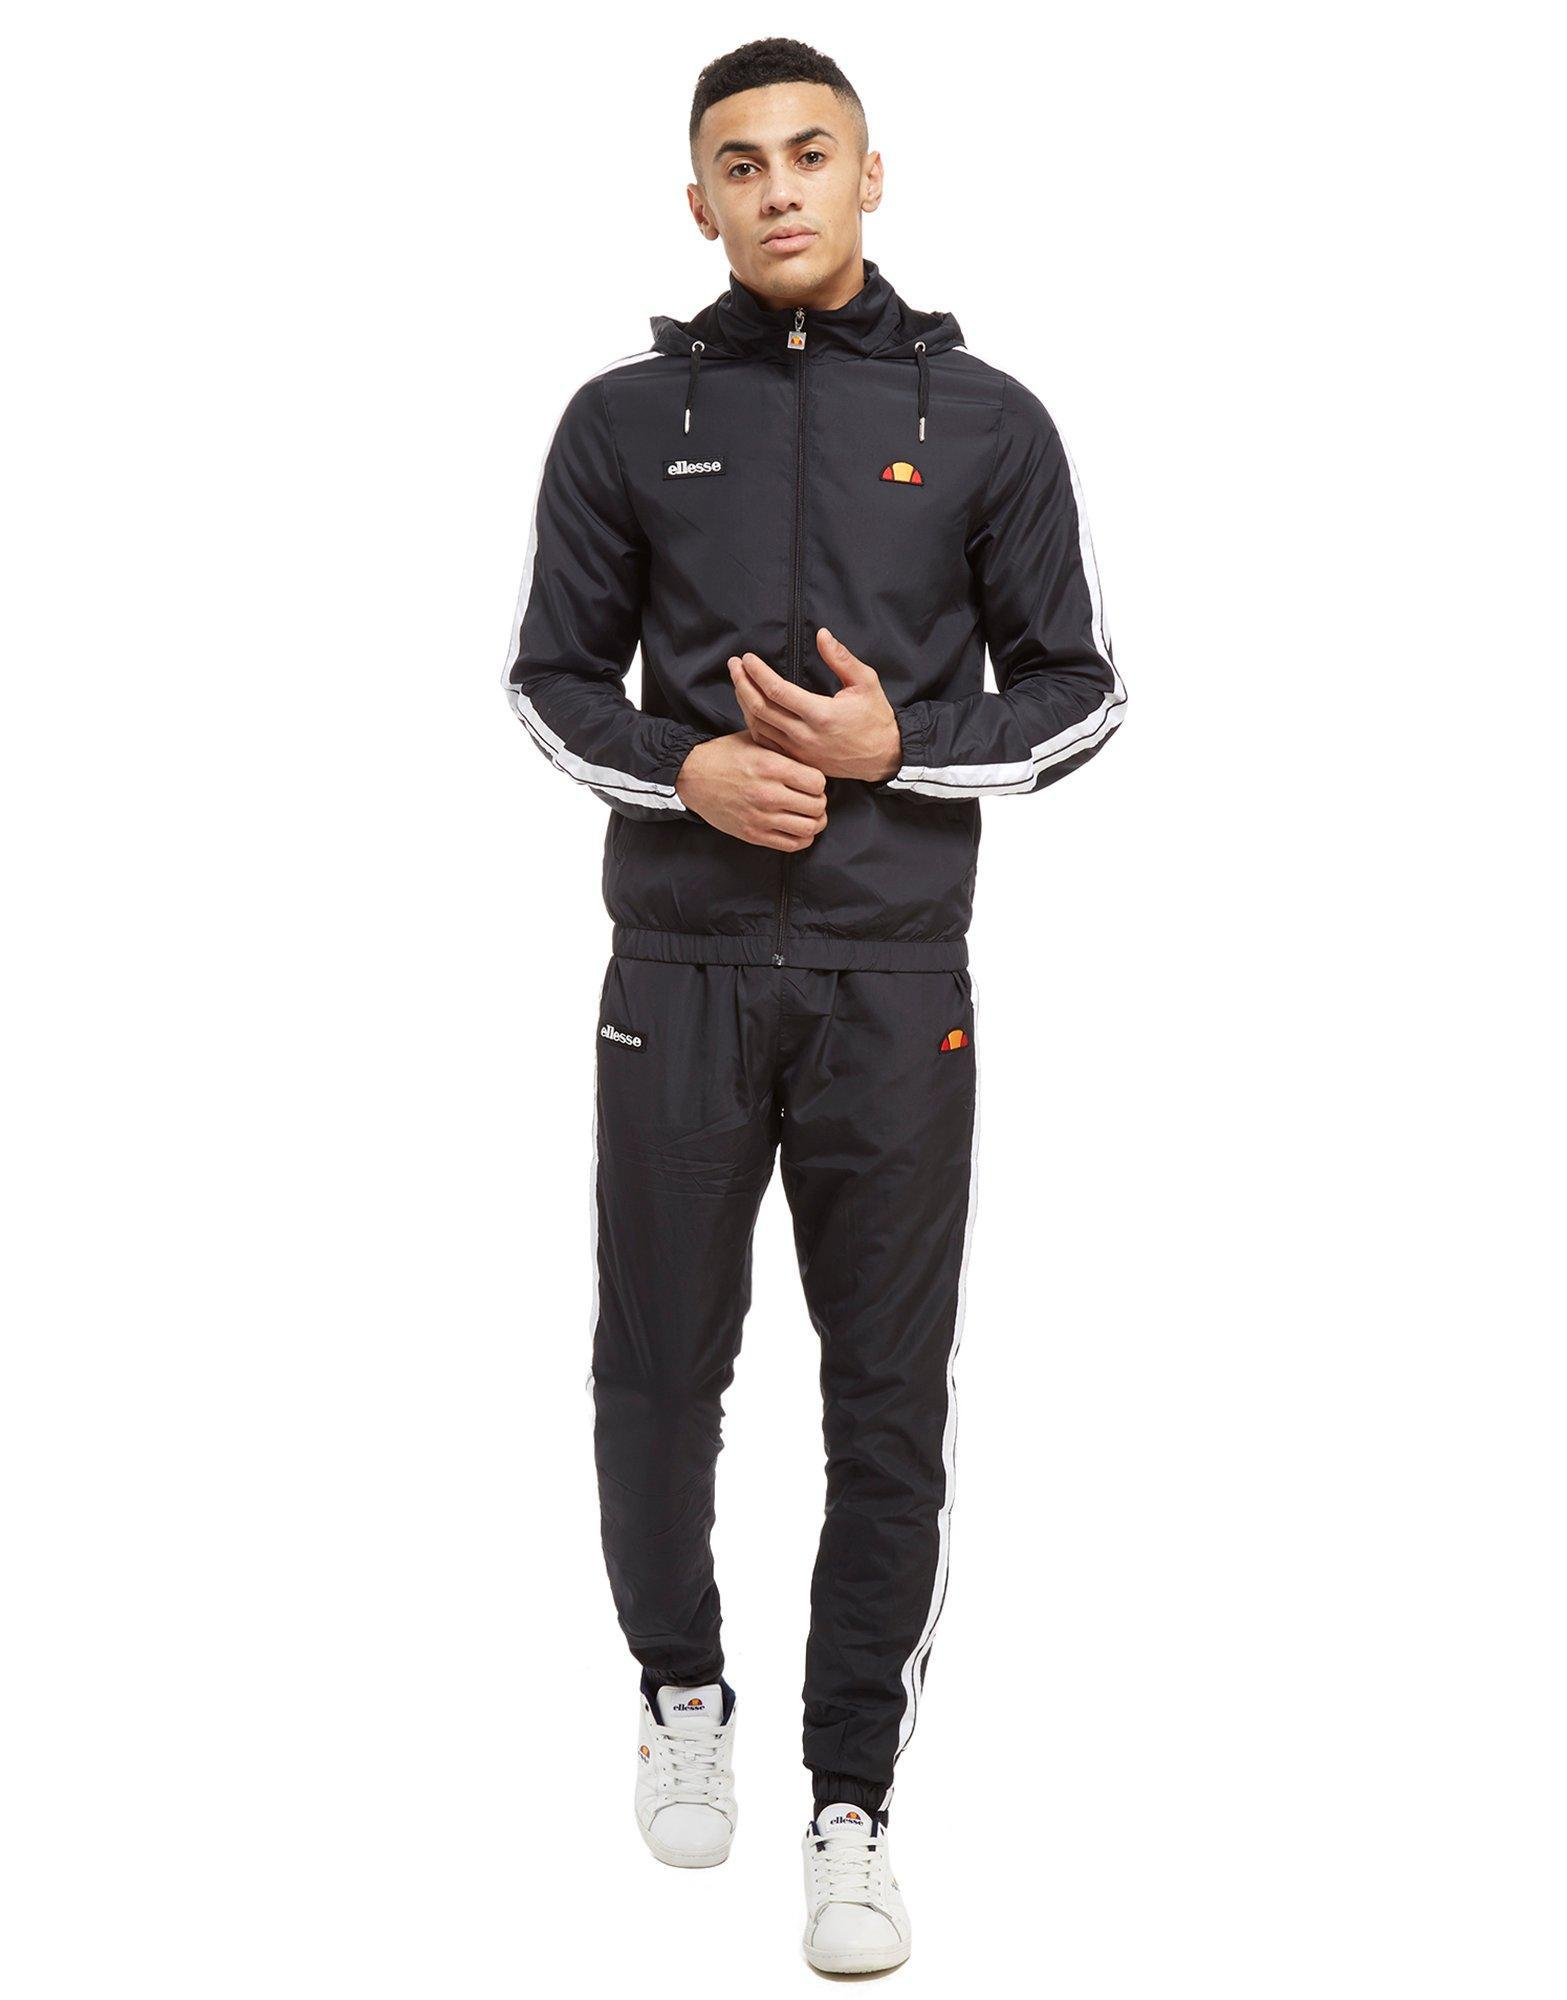 Ellesse - Black Pacis Woven Suit for Men - Lyst. View fullscreen